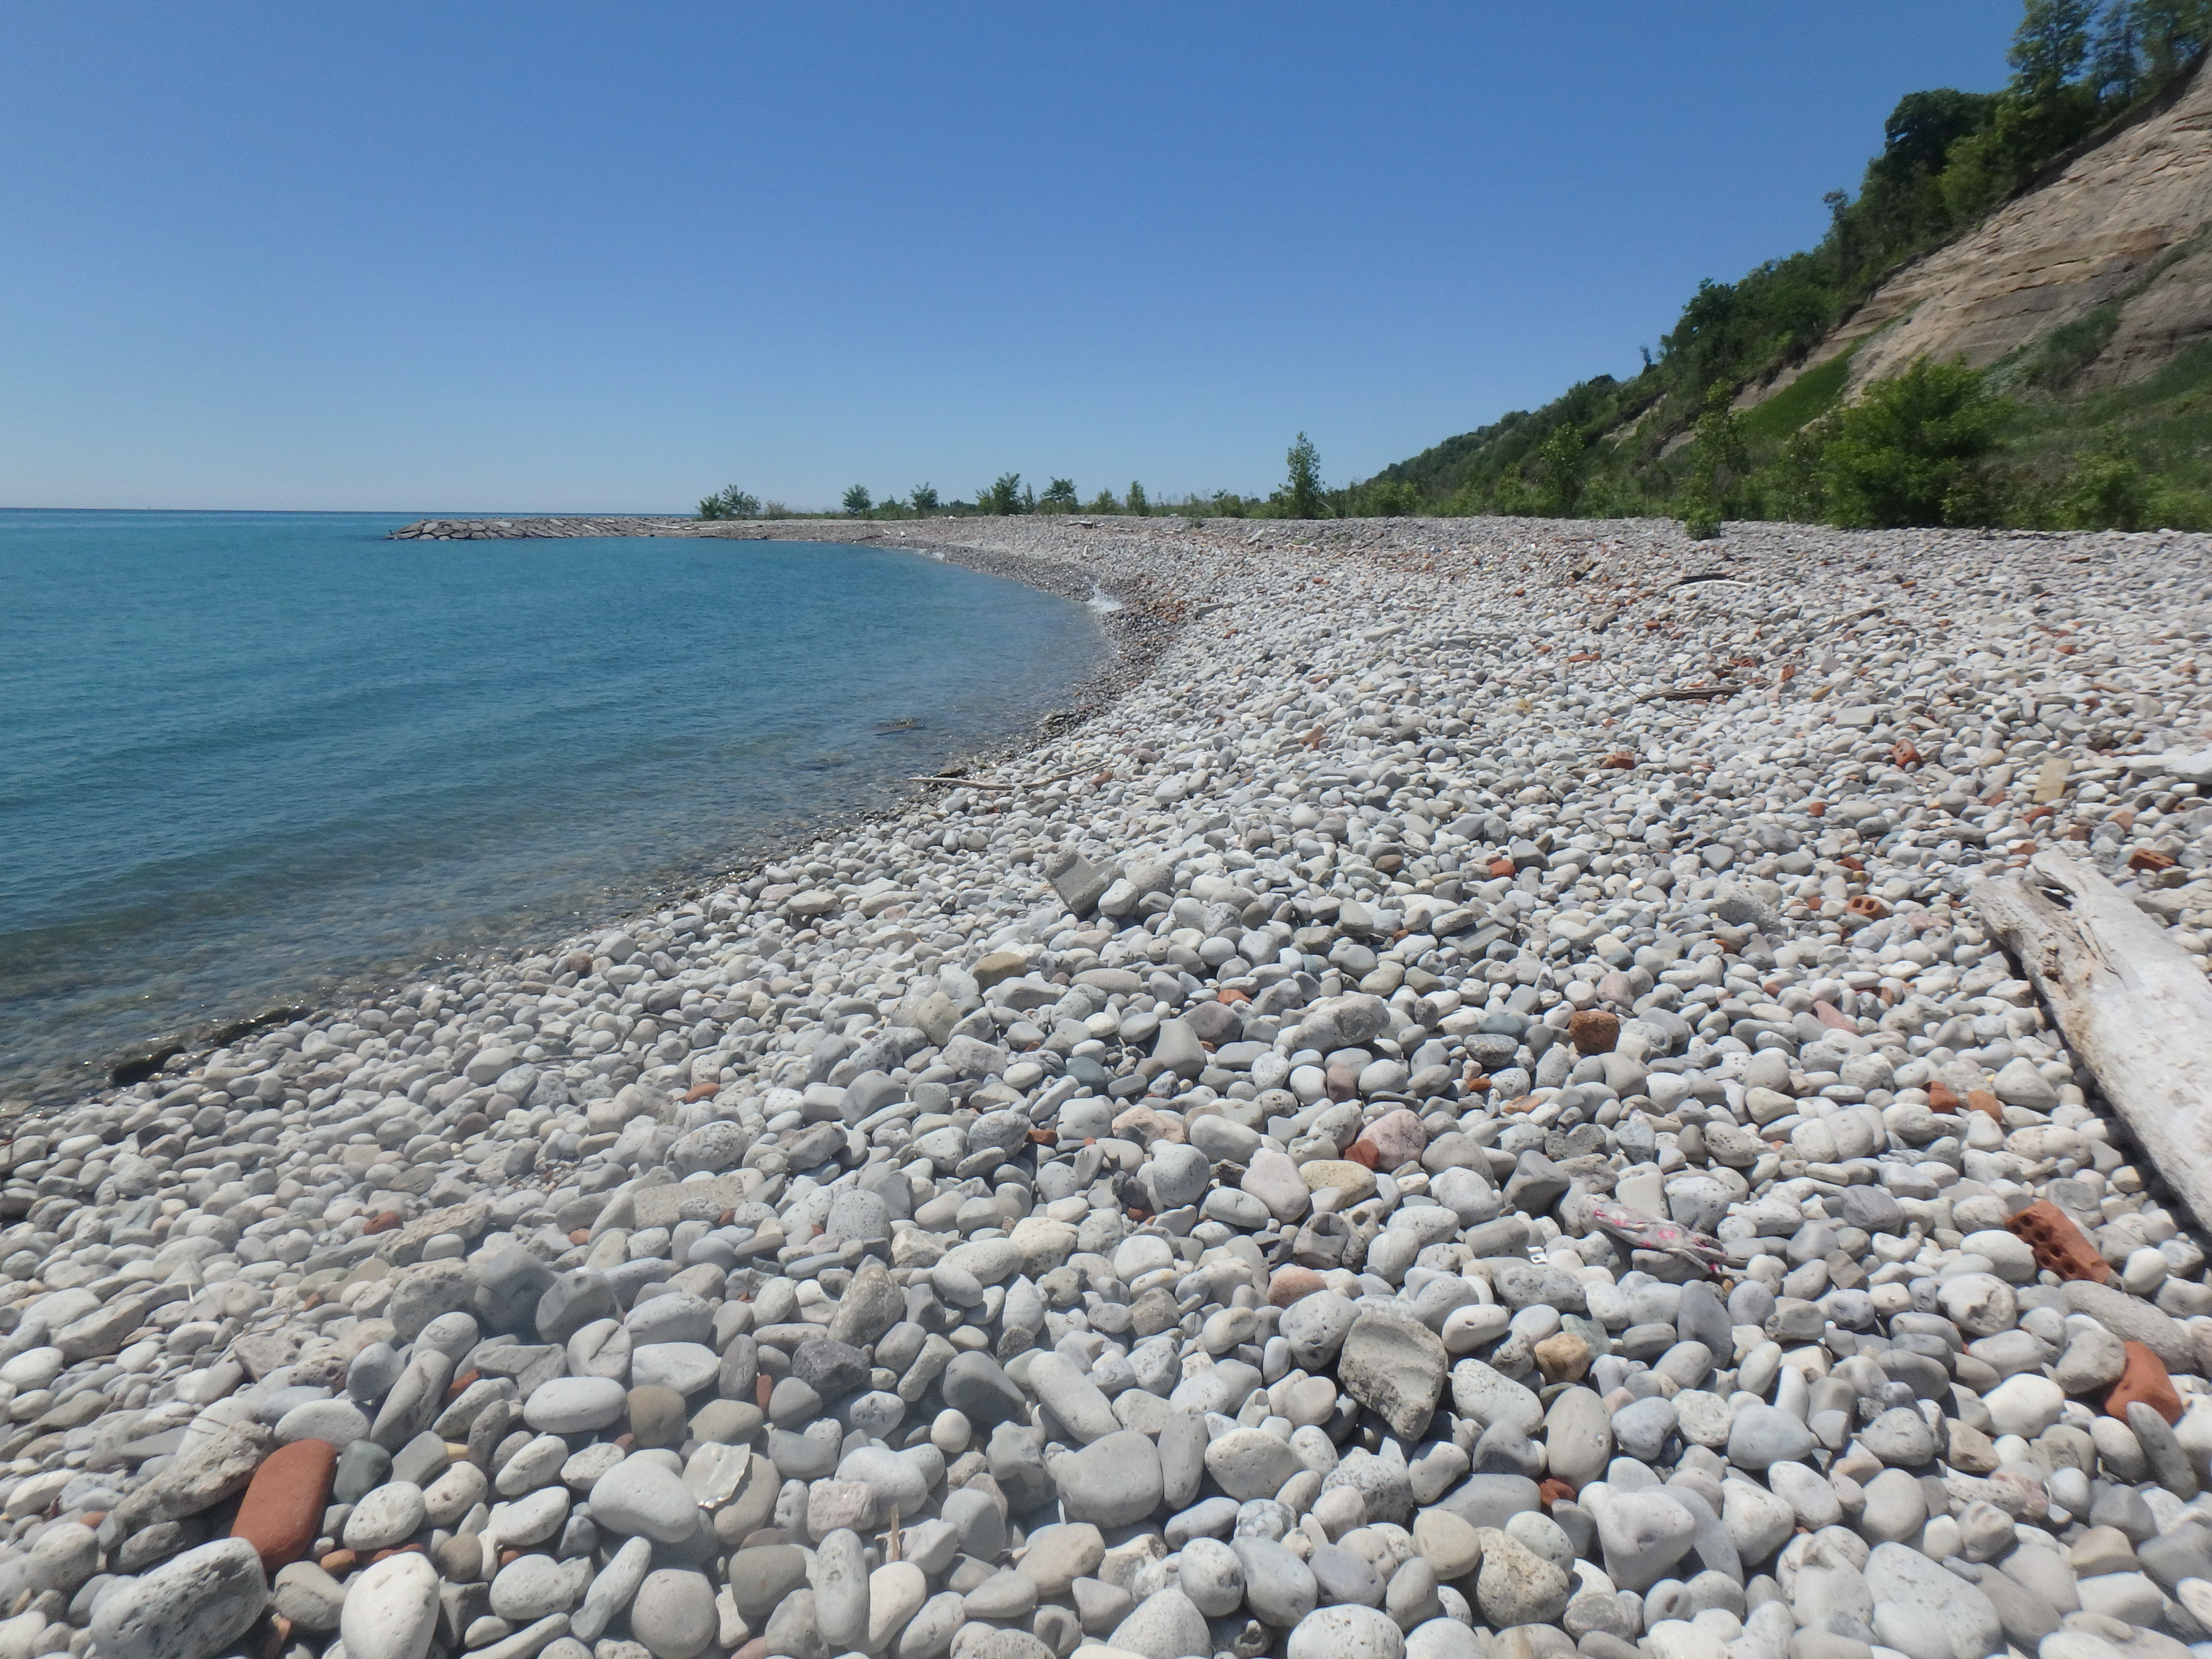 Example of a cobble beach. Source: TRCA, 2018.